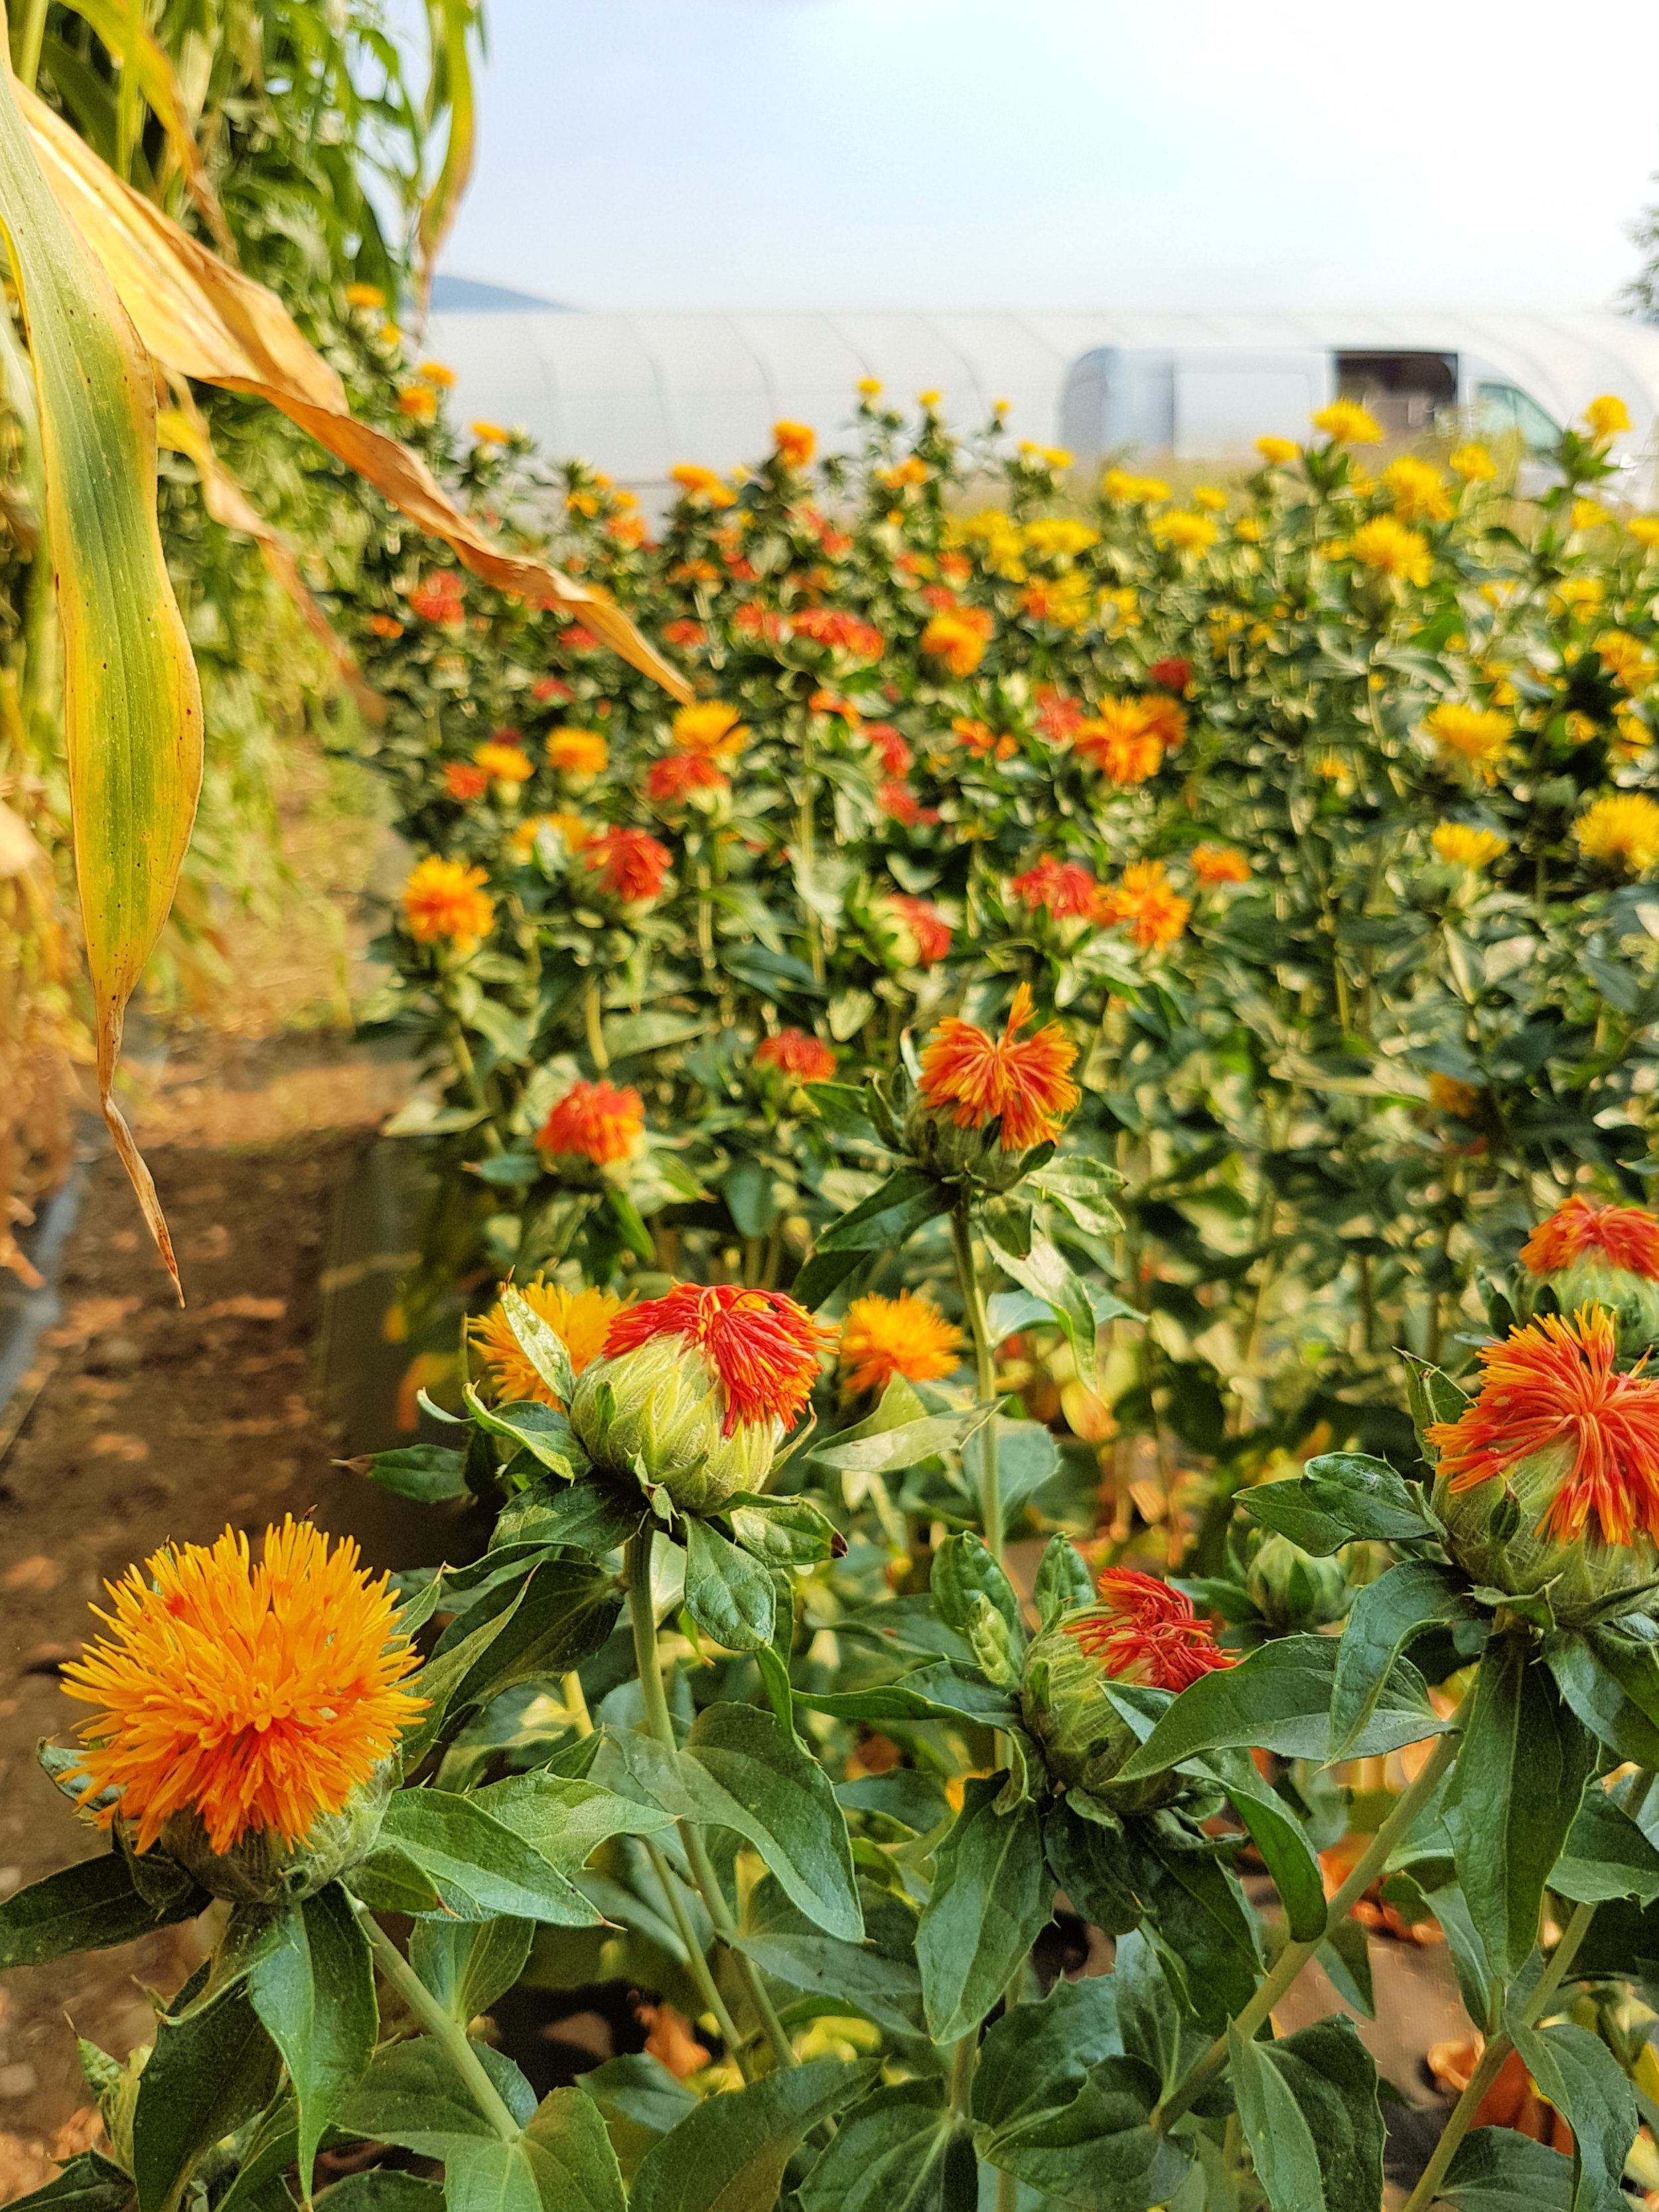 Safflower is another simple flower to grow. It has great color, interesting buds, and tolerates the heat of summer.